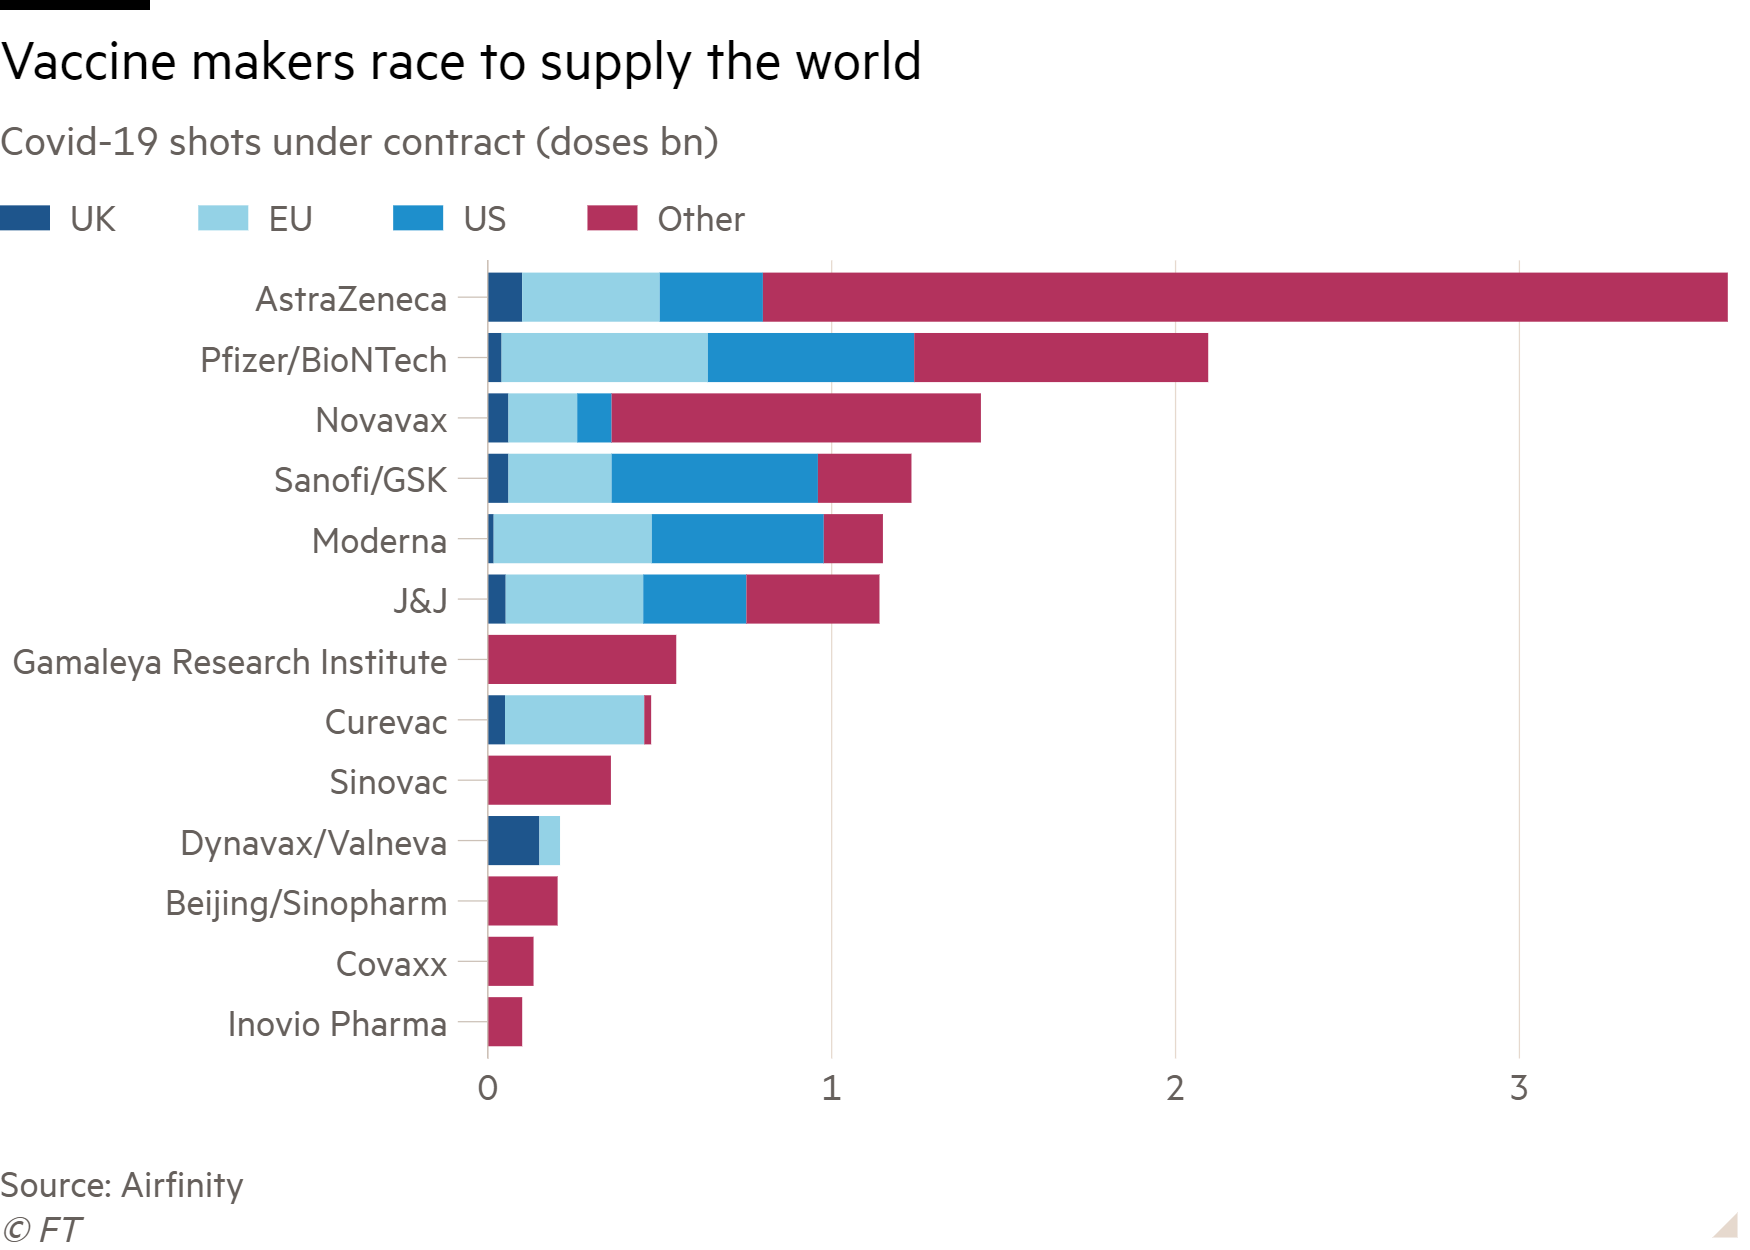 Bar chart of Covid-19 shots under contract (doses bn) showing Vaccine makers race to supply the world